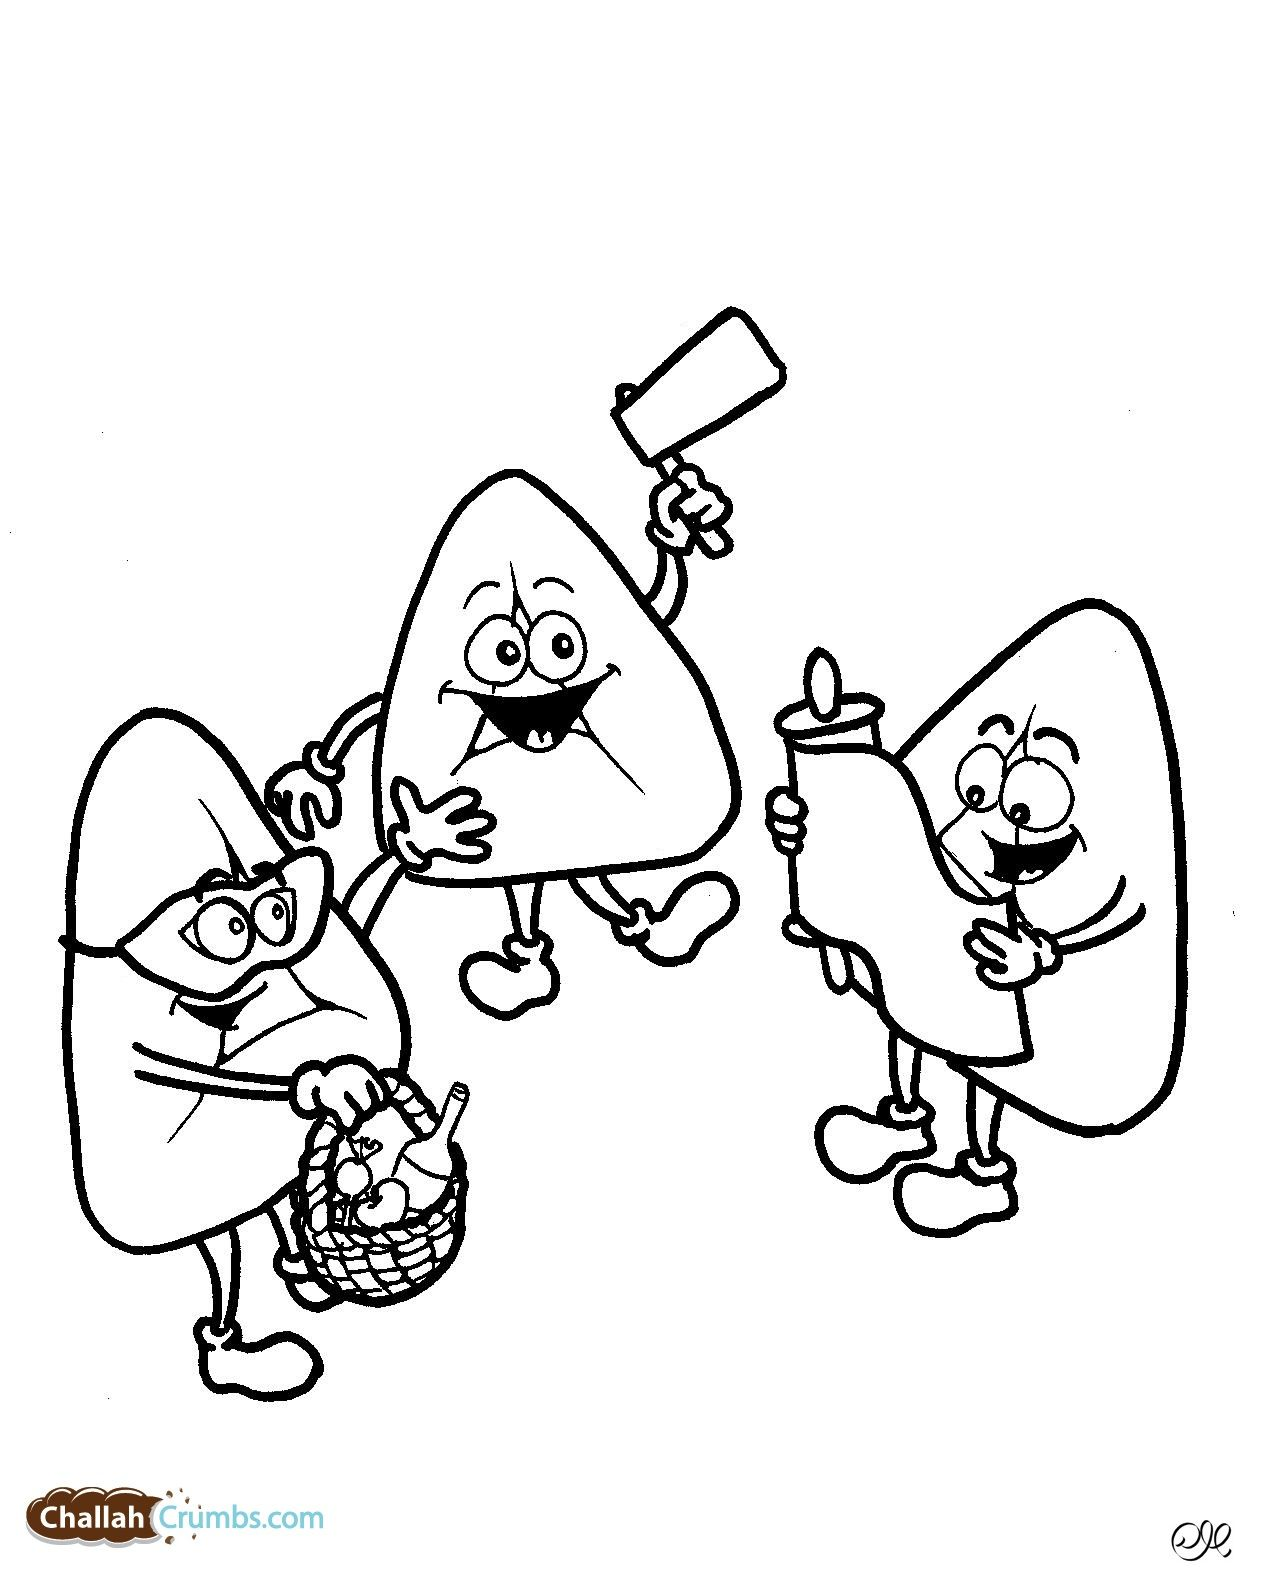 purim coloring pages - Purim Coloring Pages